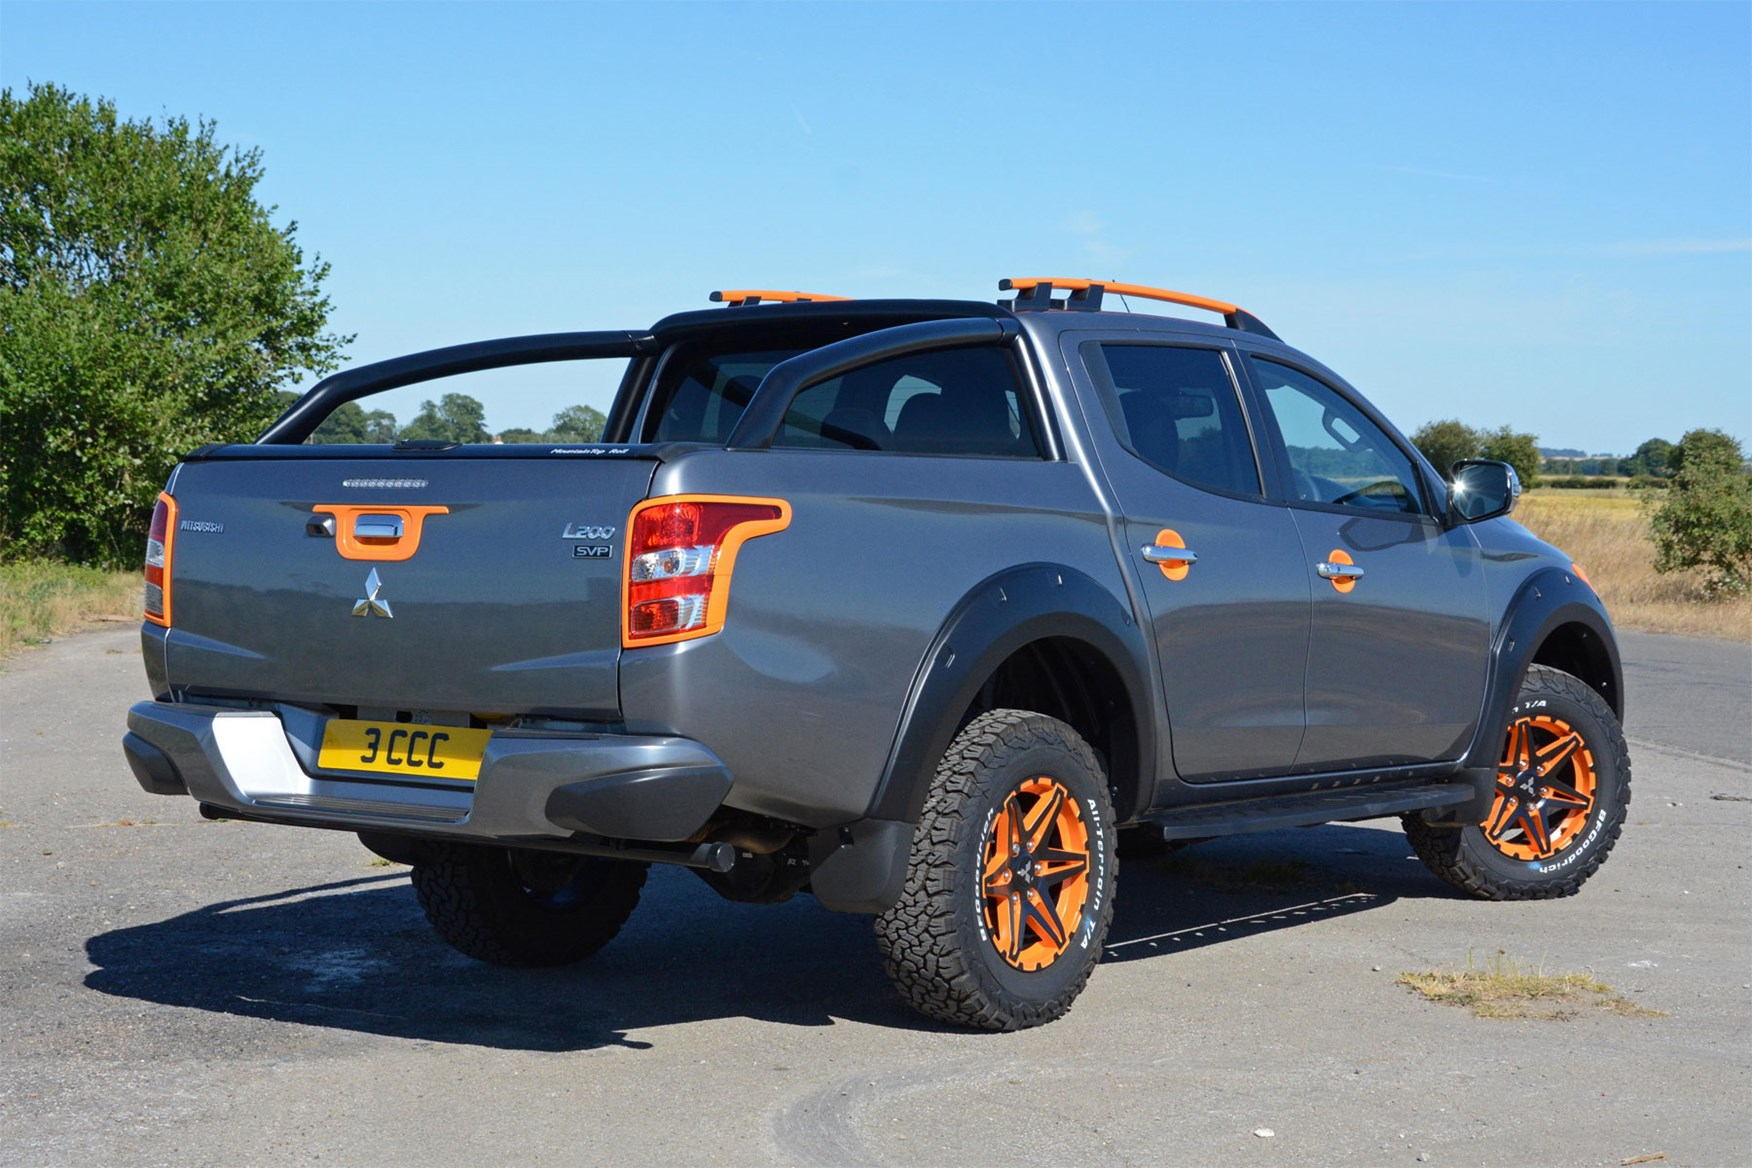 Mitsubishi L200 review, Barbarian SVP II, grey and orange, rear view